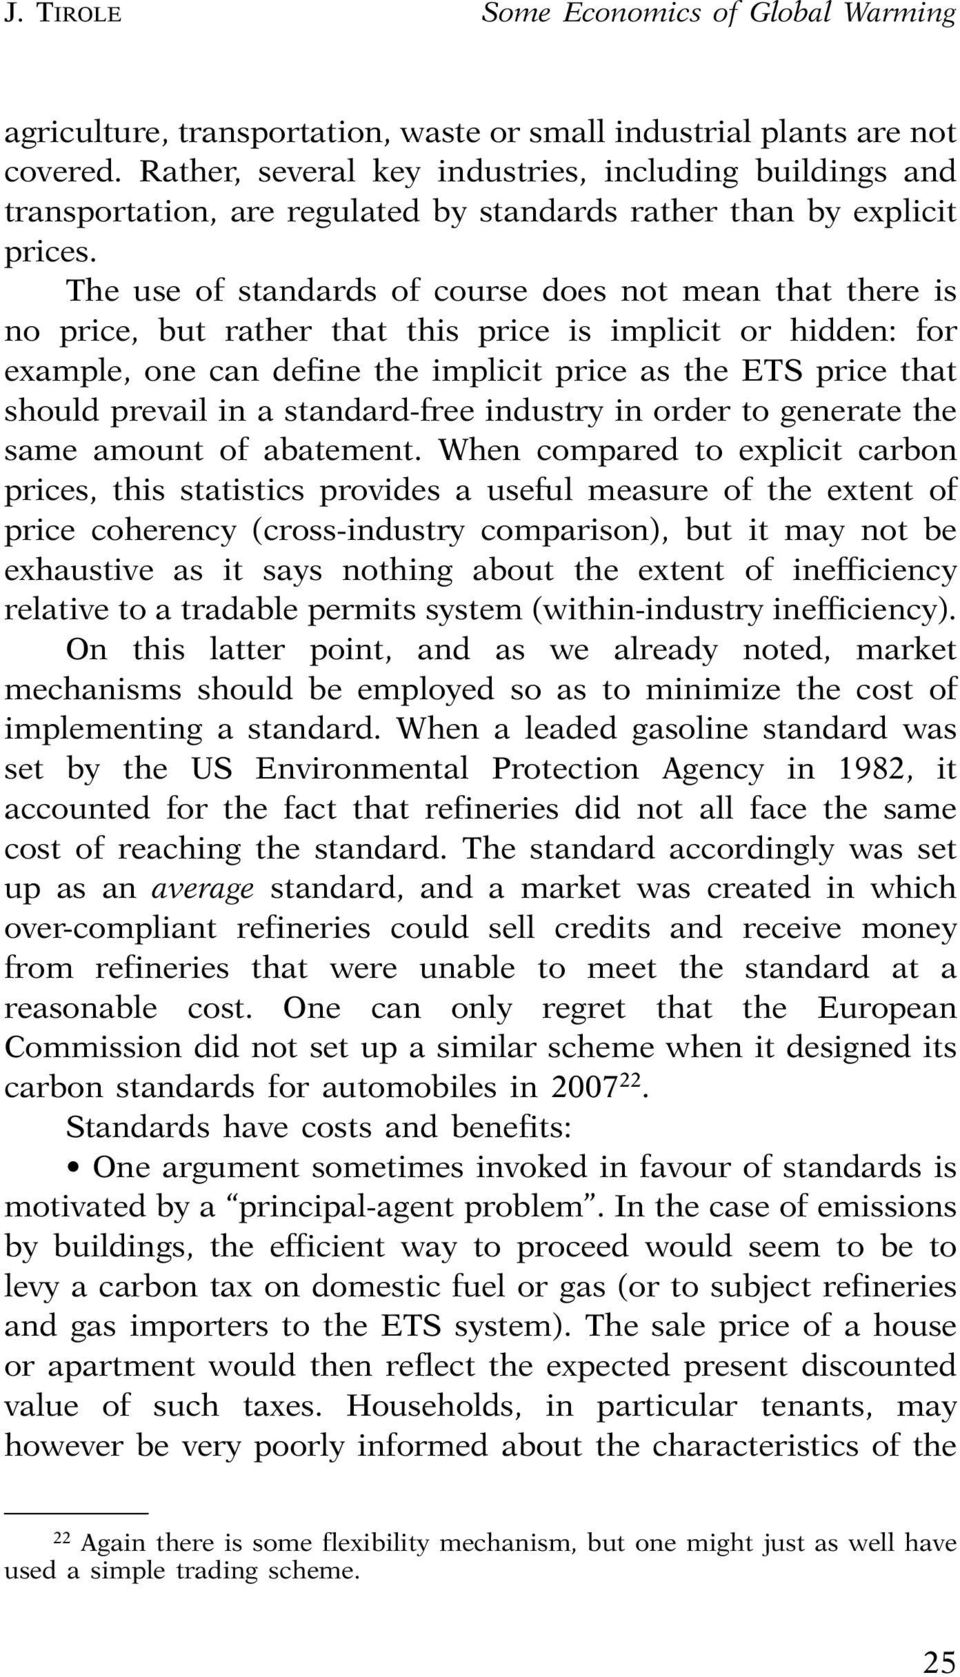 The use of standards of course does not mean that there is no price, but rather that this price is implicit or hidden: for example, one can define the implicit price as the ETS price that should